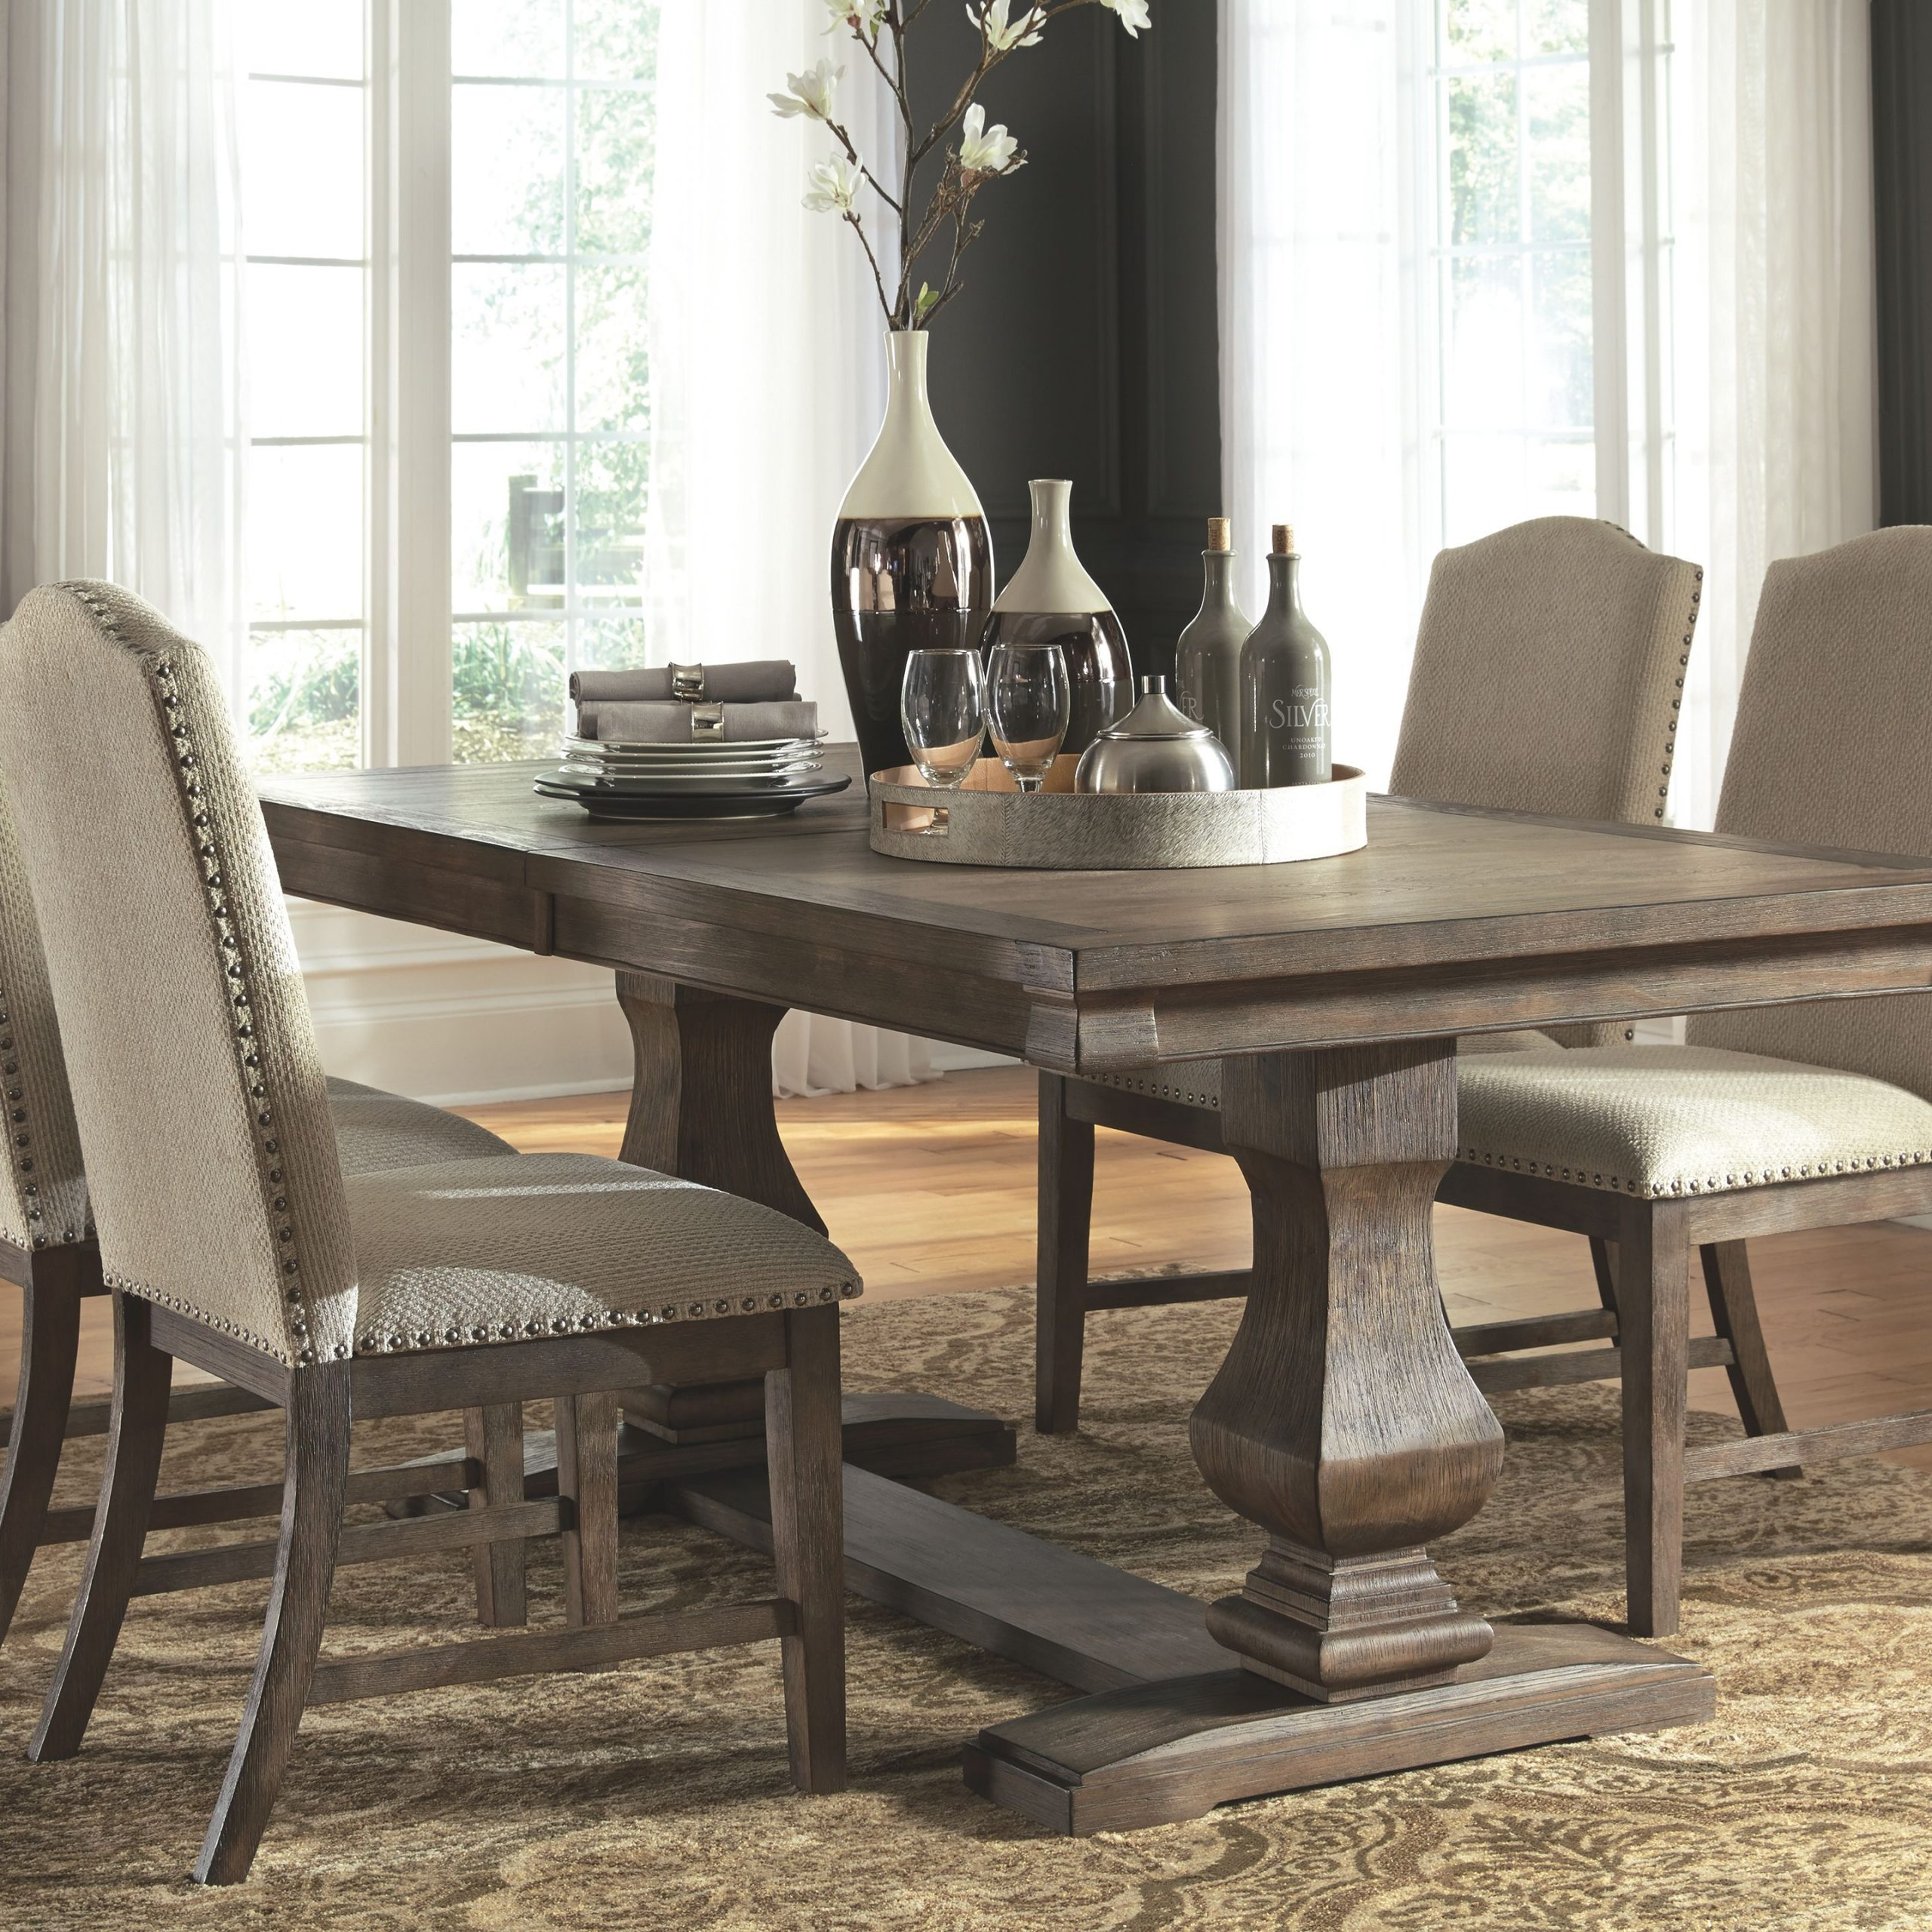 Aecc Lorraine Extending Dining Table C Hewn Oak C Pottery Within Most Up To Date Hewn Oak Lorraine Pedestal Extending Dining Tables (View 20 of 25)